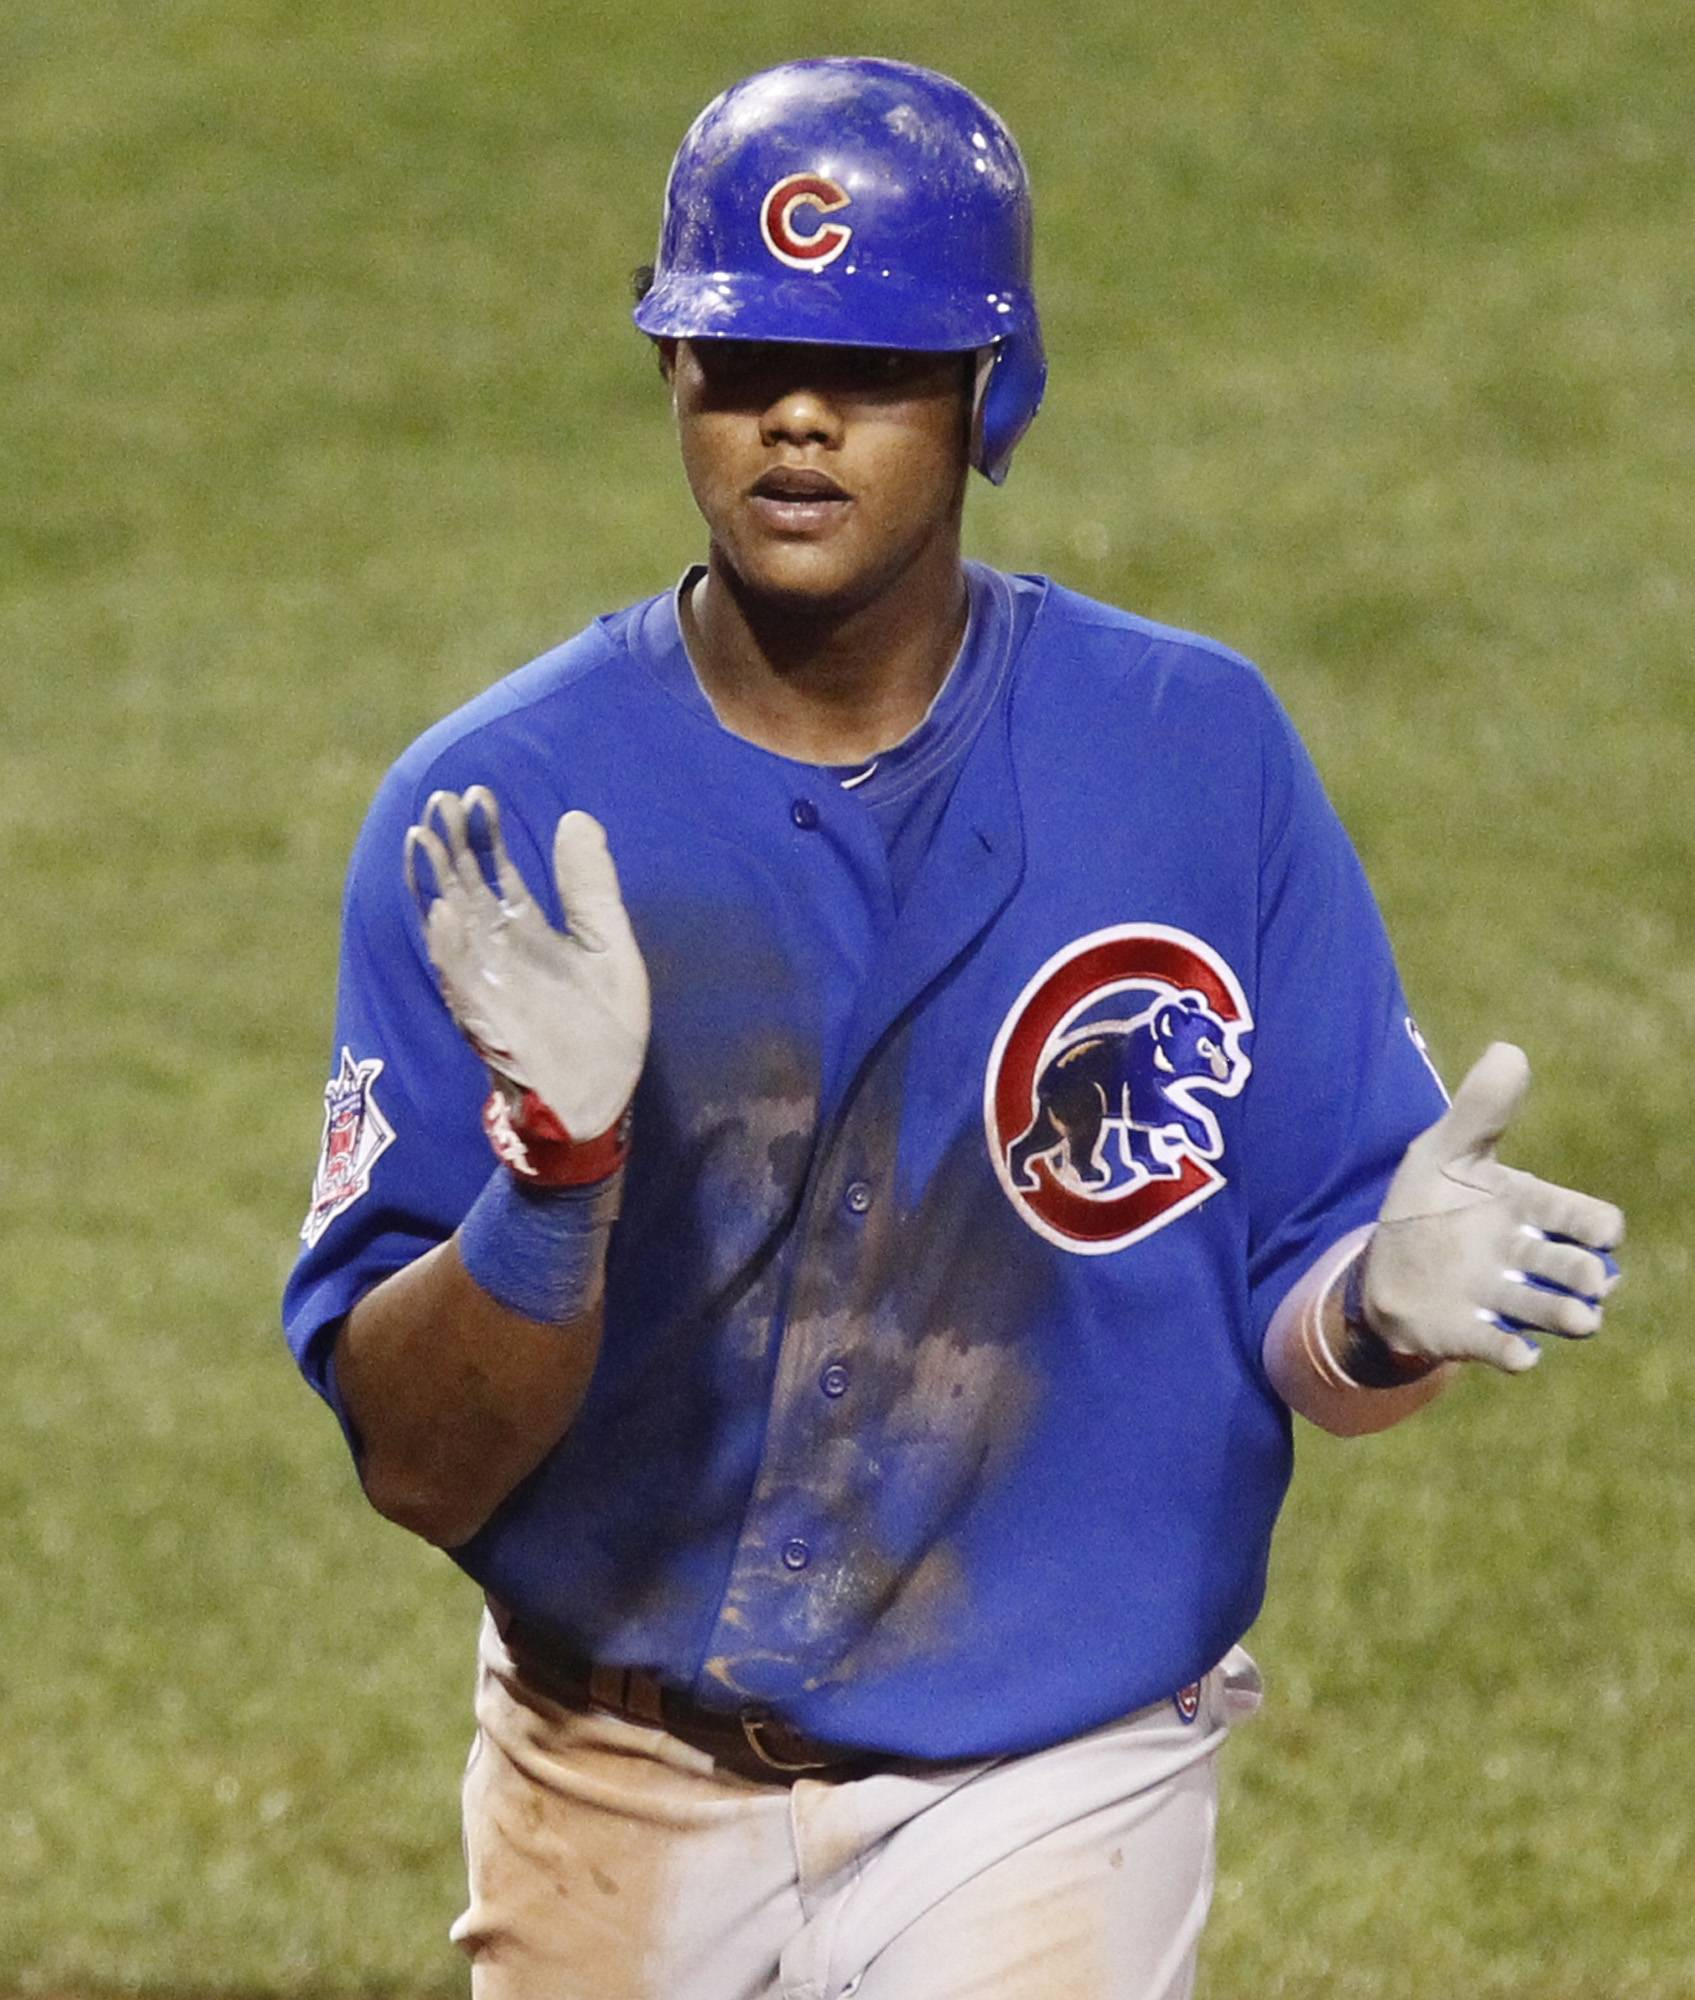 Starlin Castro celebrates as he crosses the plate after hitting a solo-home run off Pittsburgh Pirates pitcher Chris Resop in the eighth inning Wednesday night.